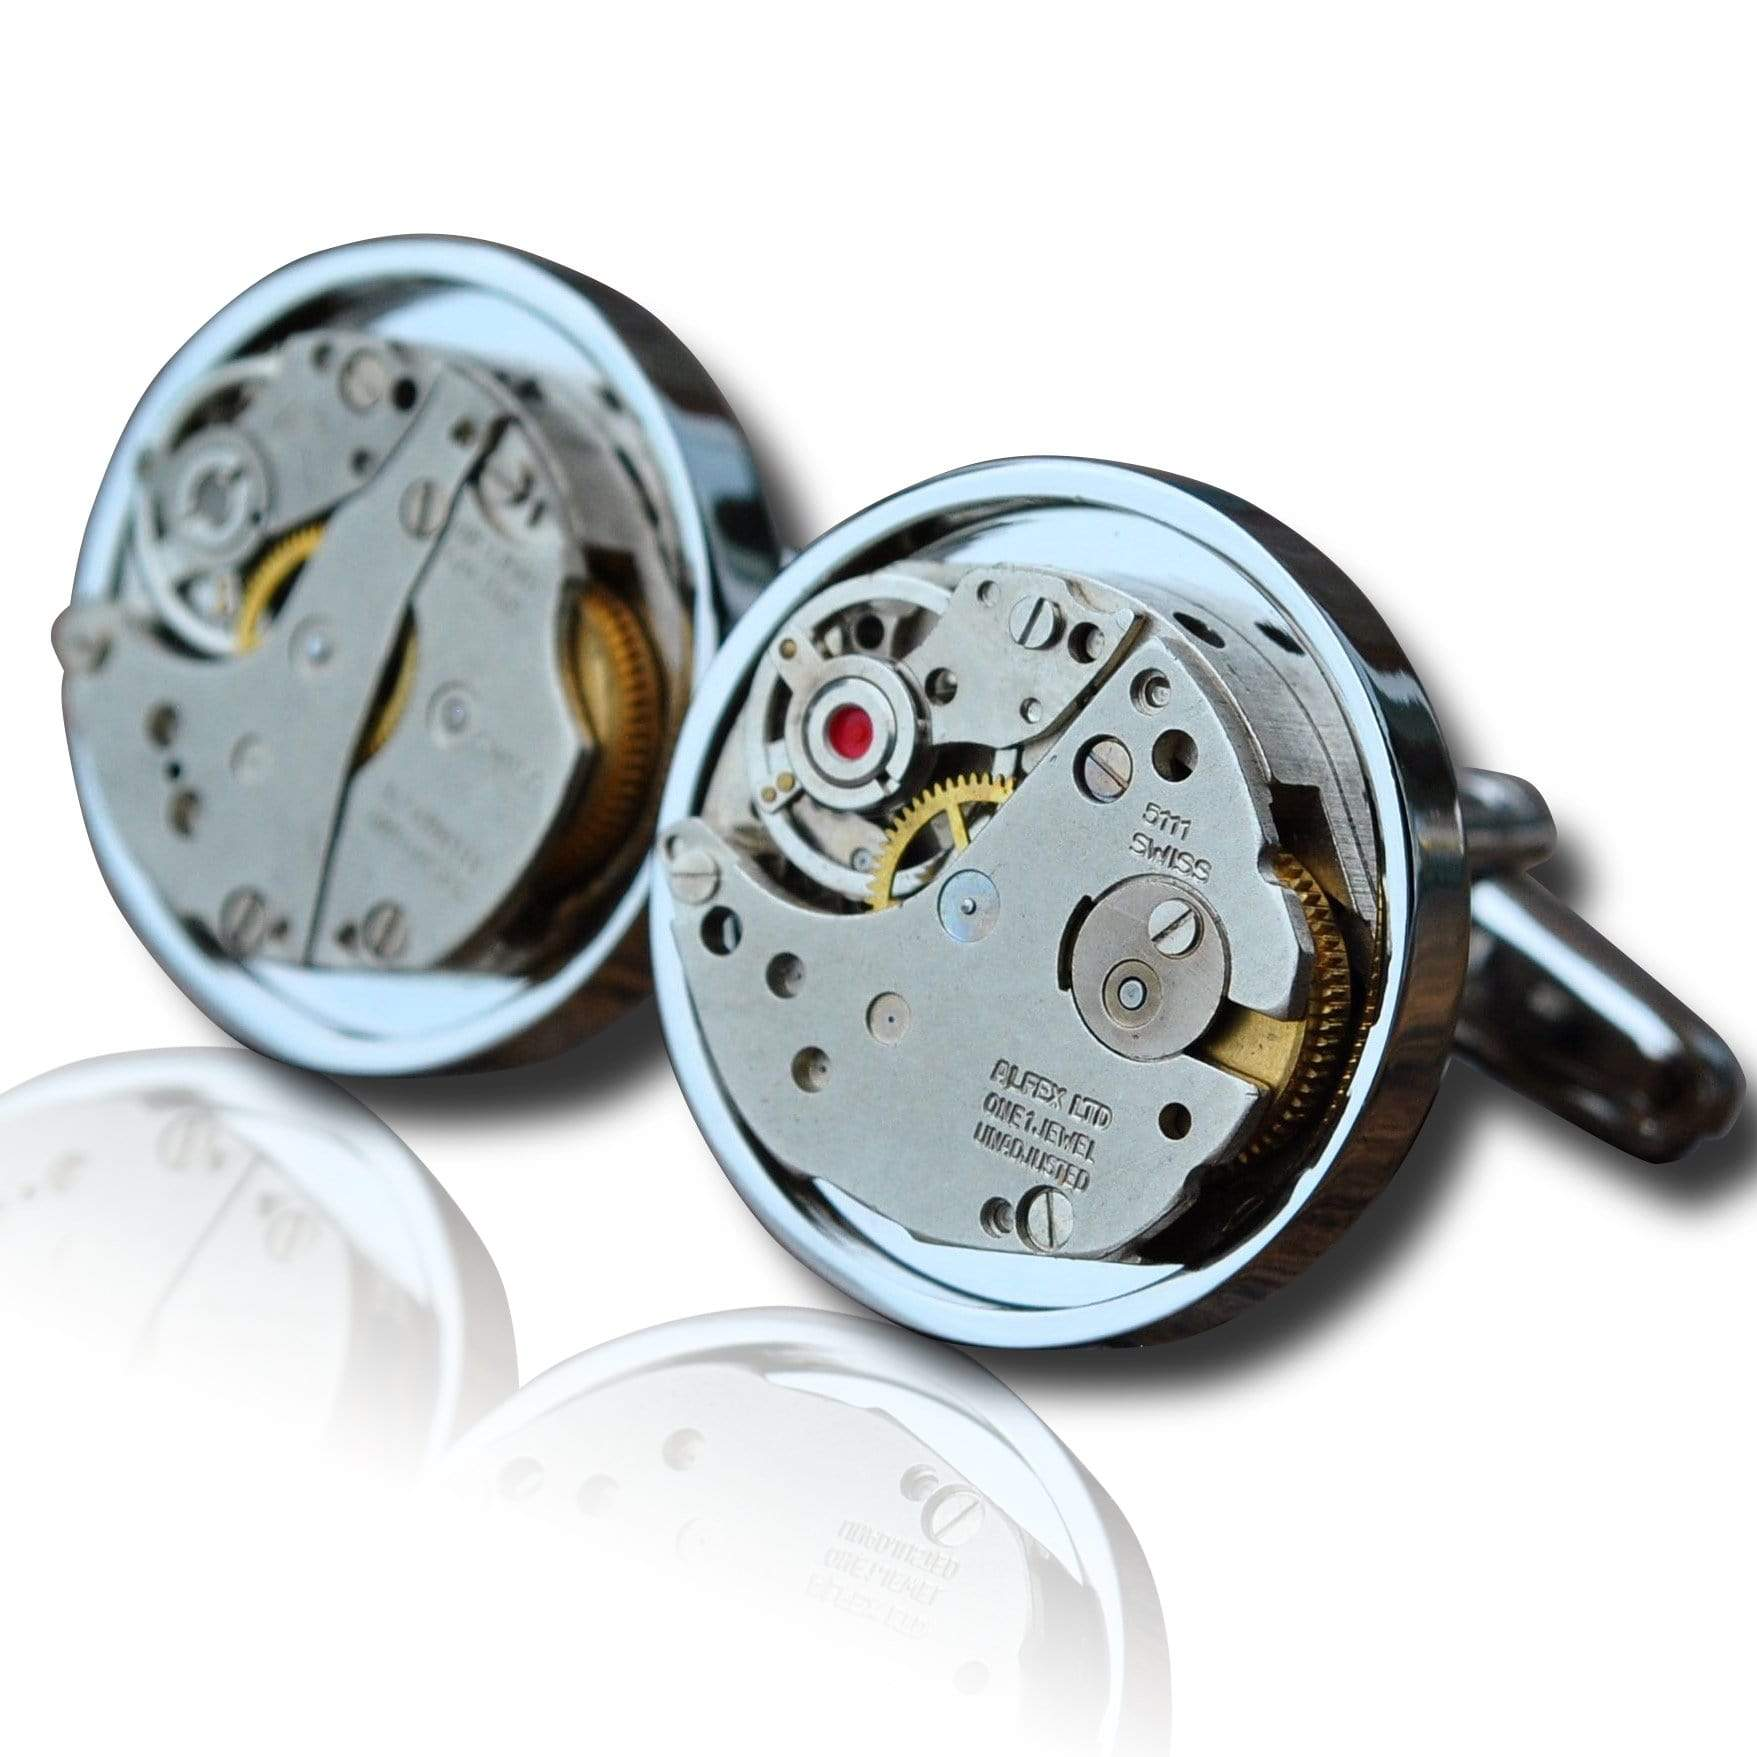 Mens Cufflinks | Lingo Luxe The Snipes-Lingo Luxe Bespoke